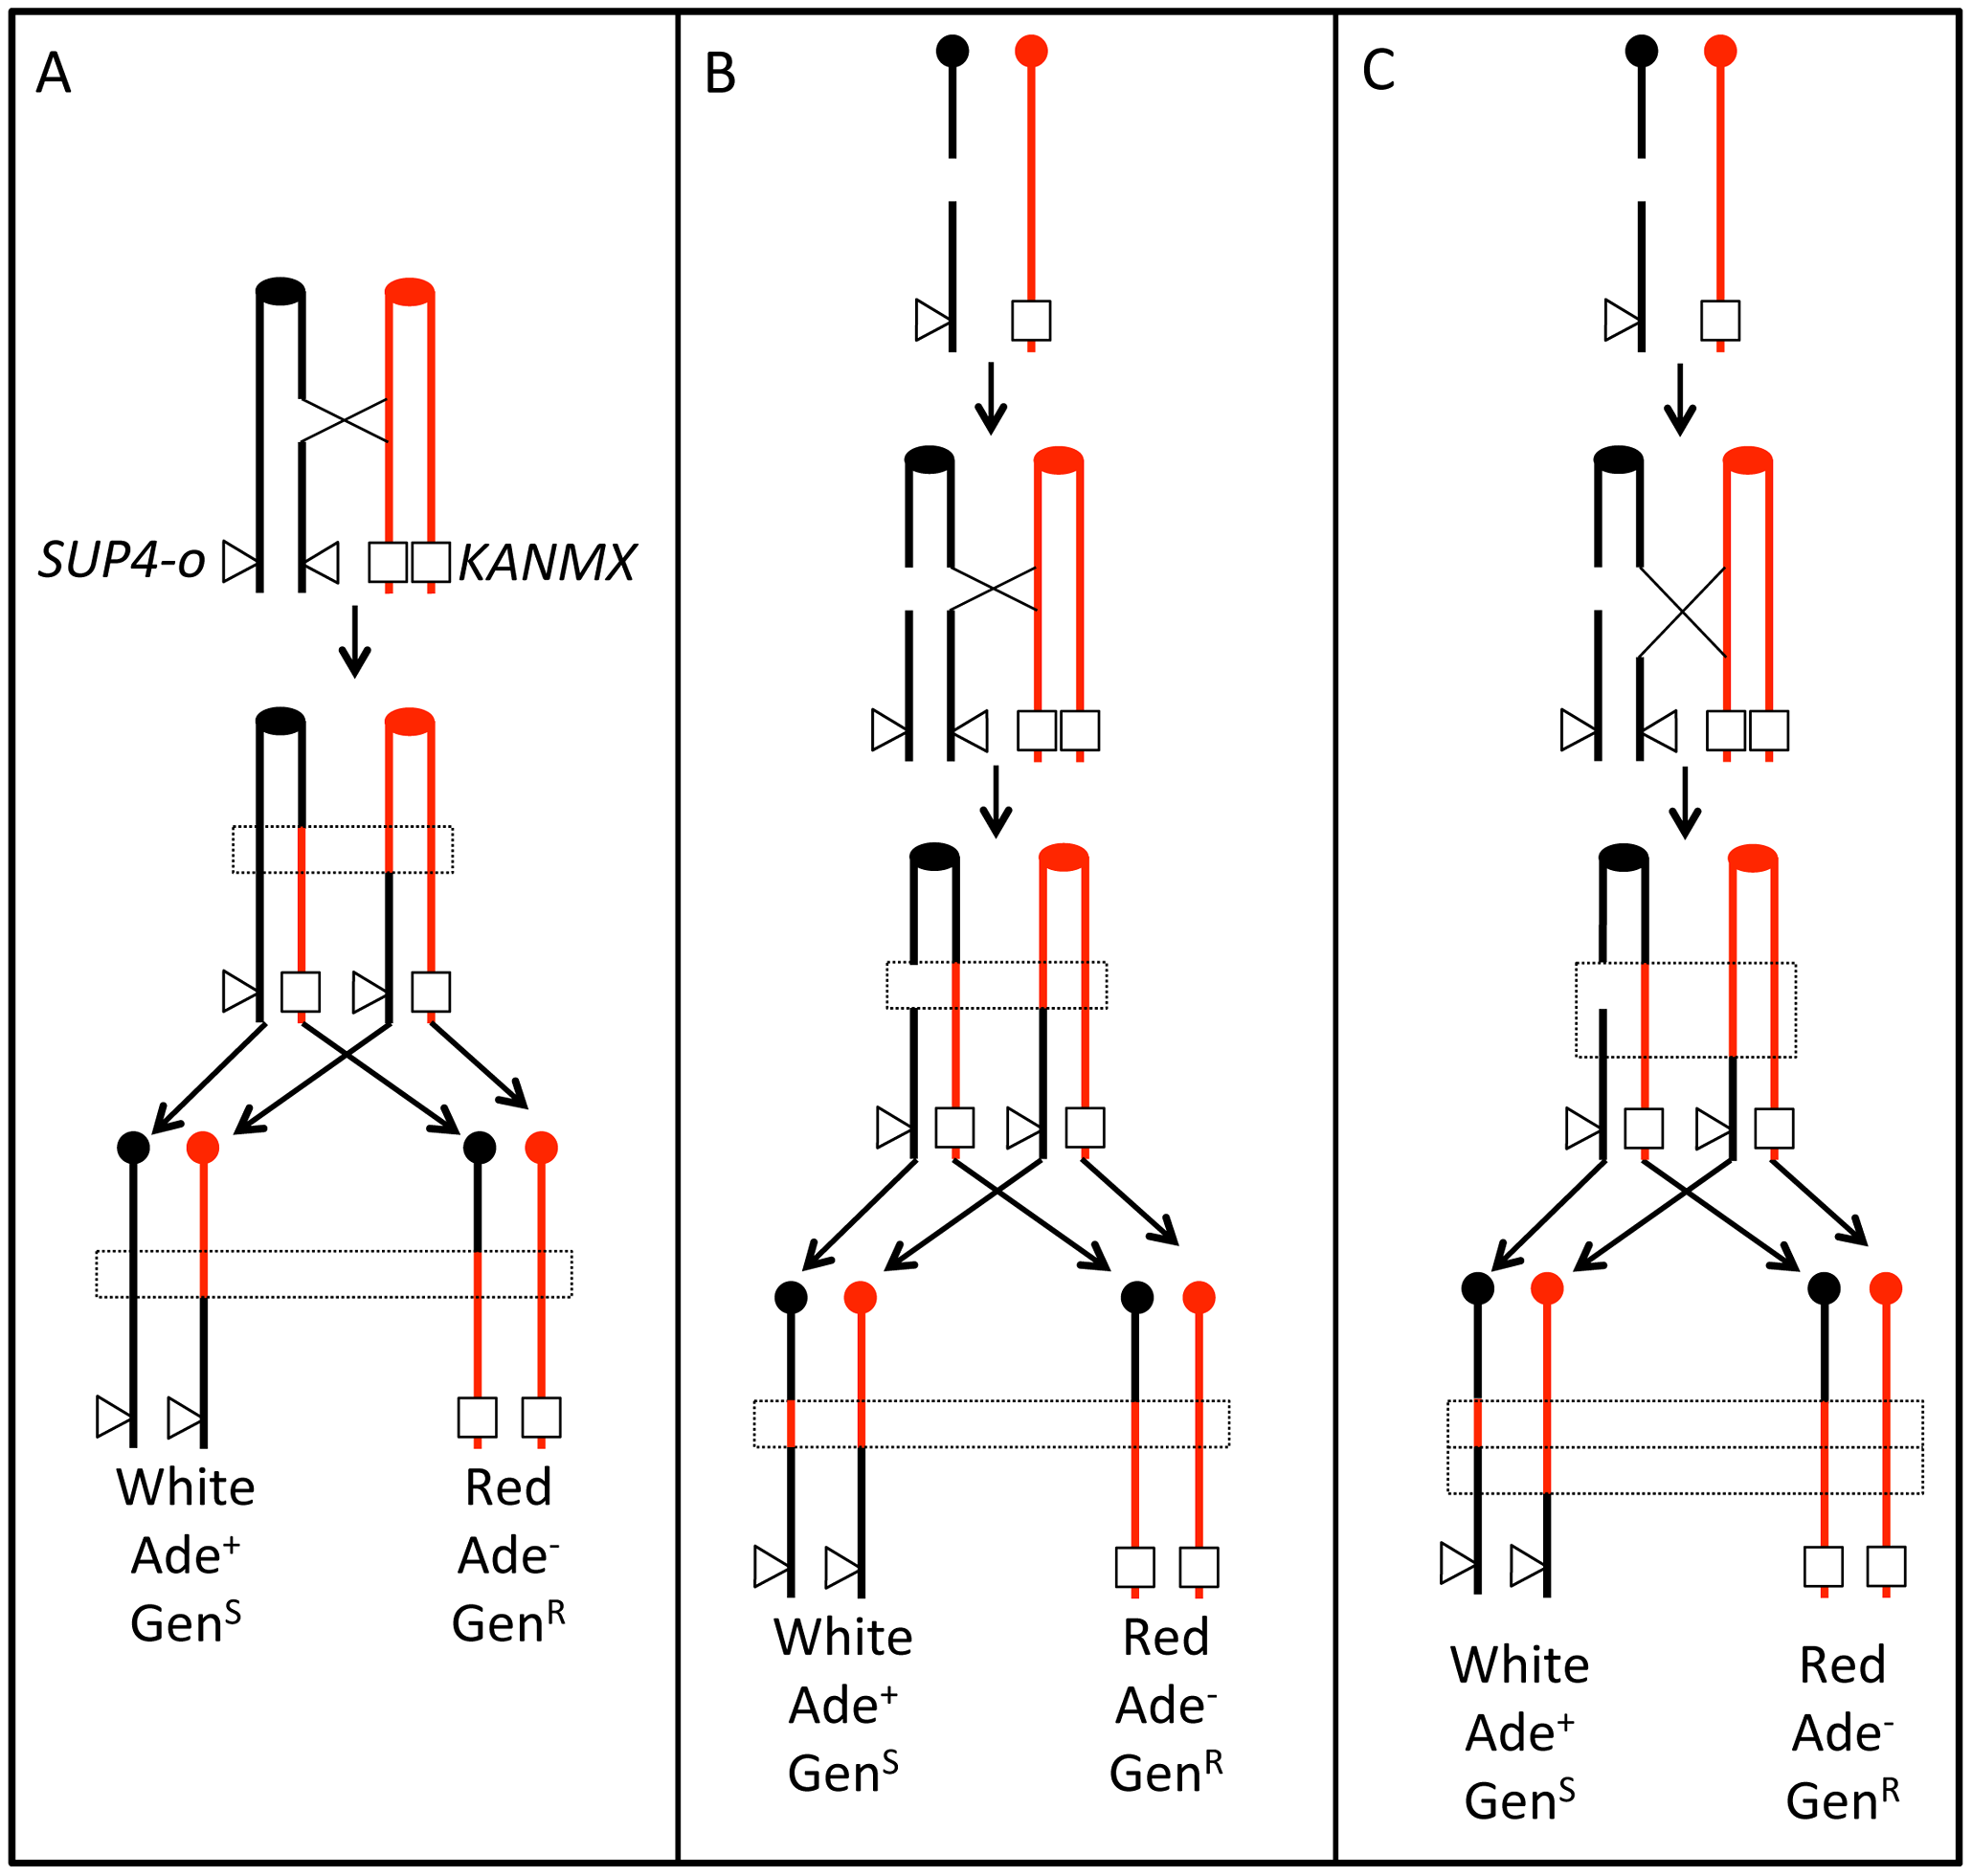 Patterns of gene conversion resulting from the repair of G1- or G2-generated DSBs.